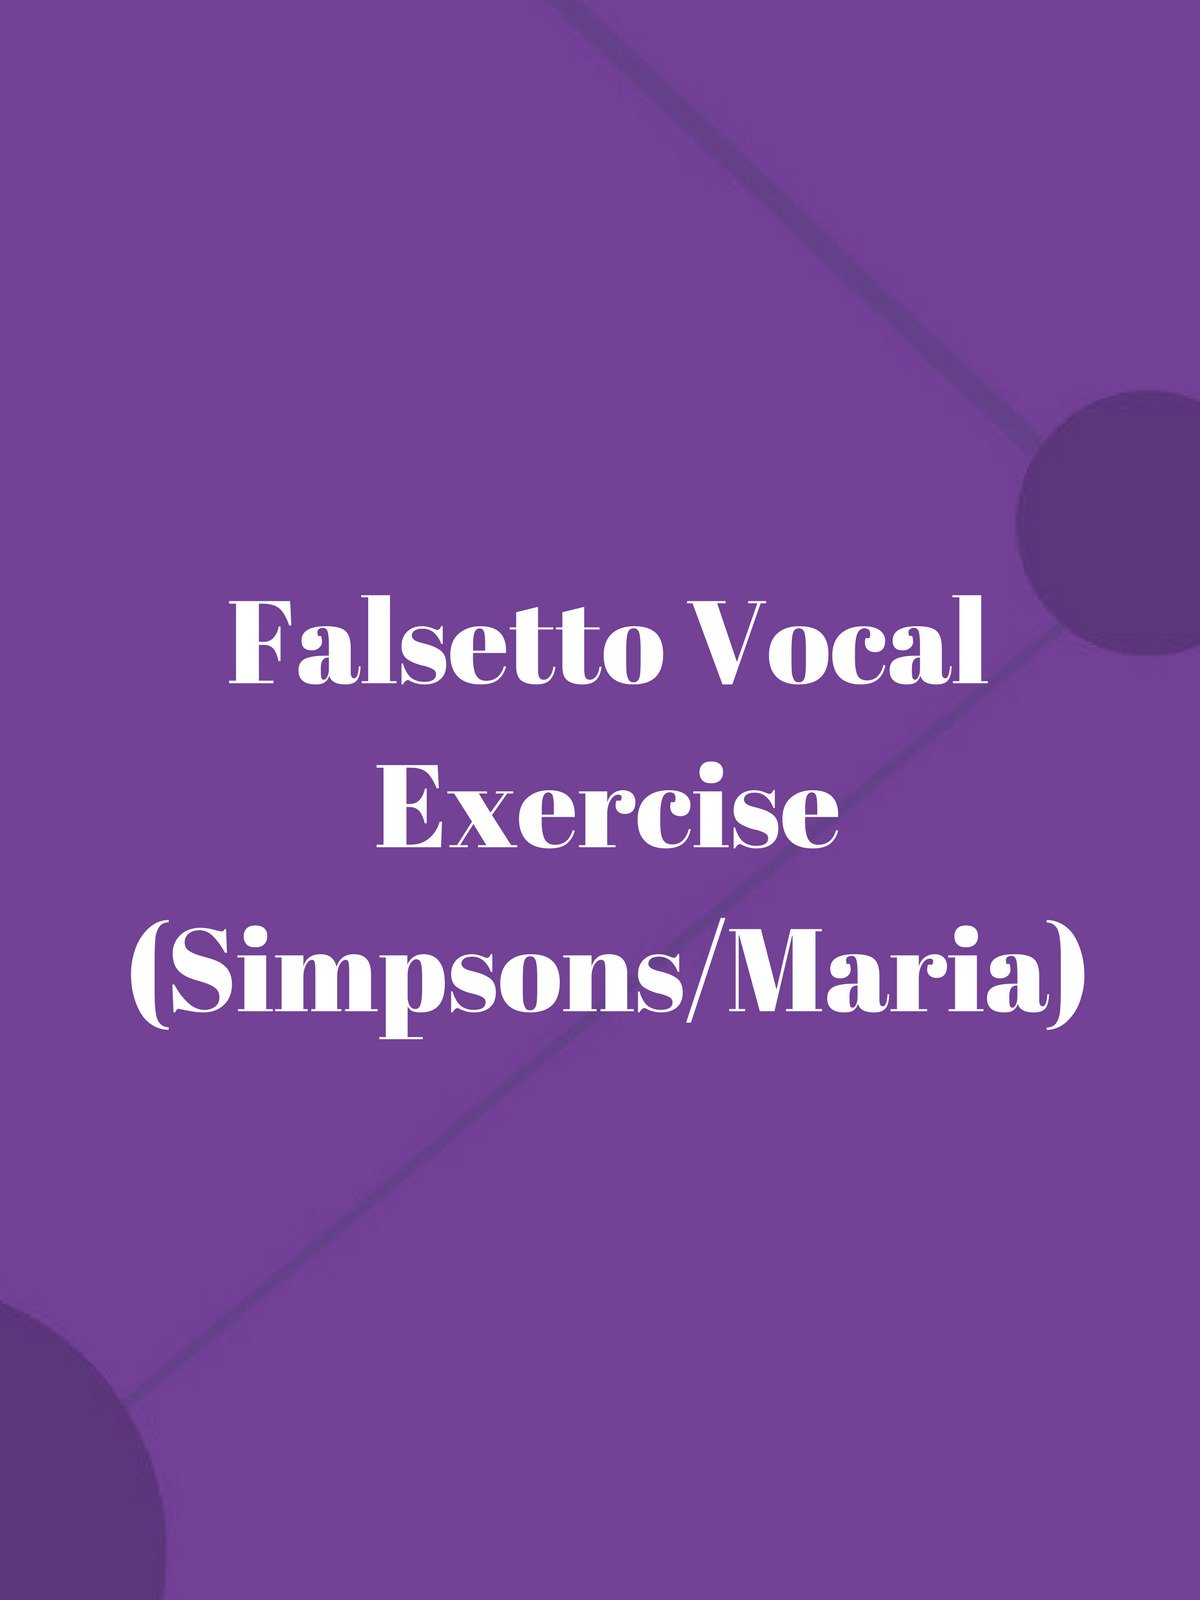 Falsetto Vocal Exercise (Simpsons/Maria)